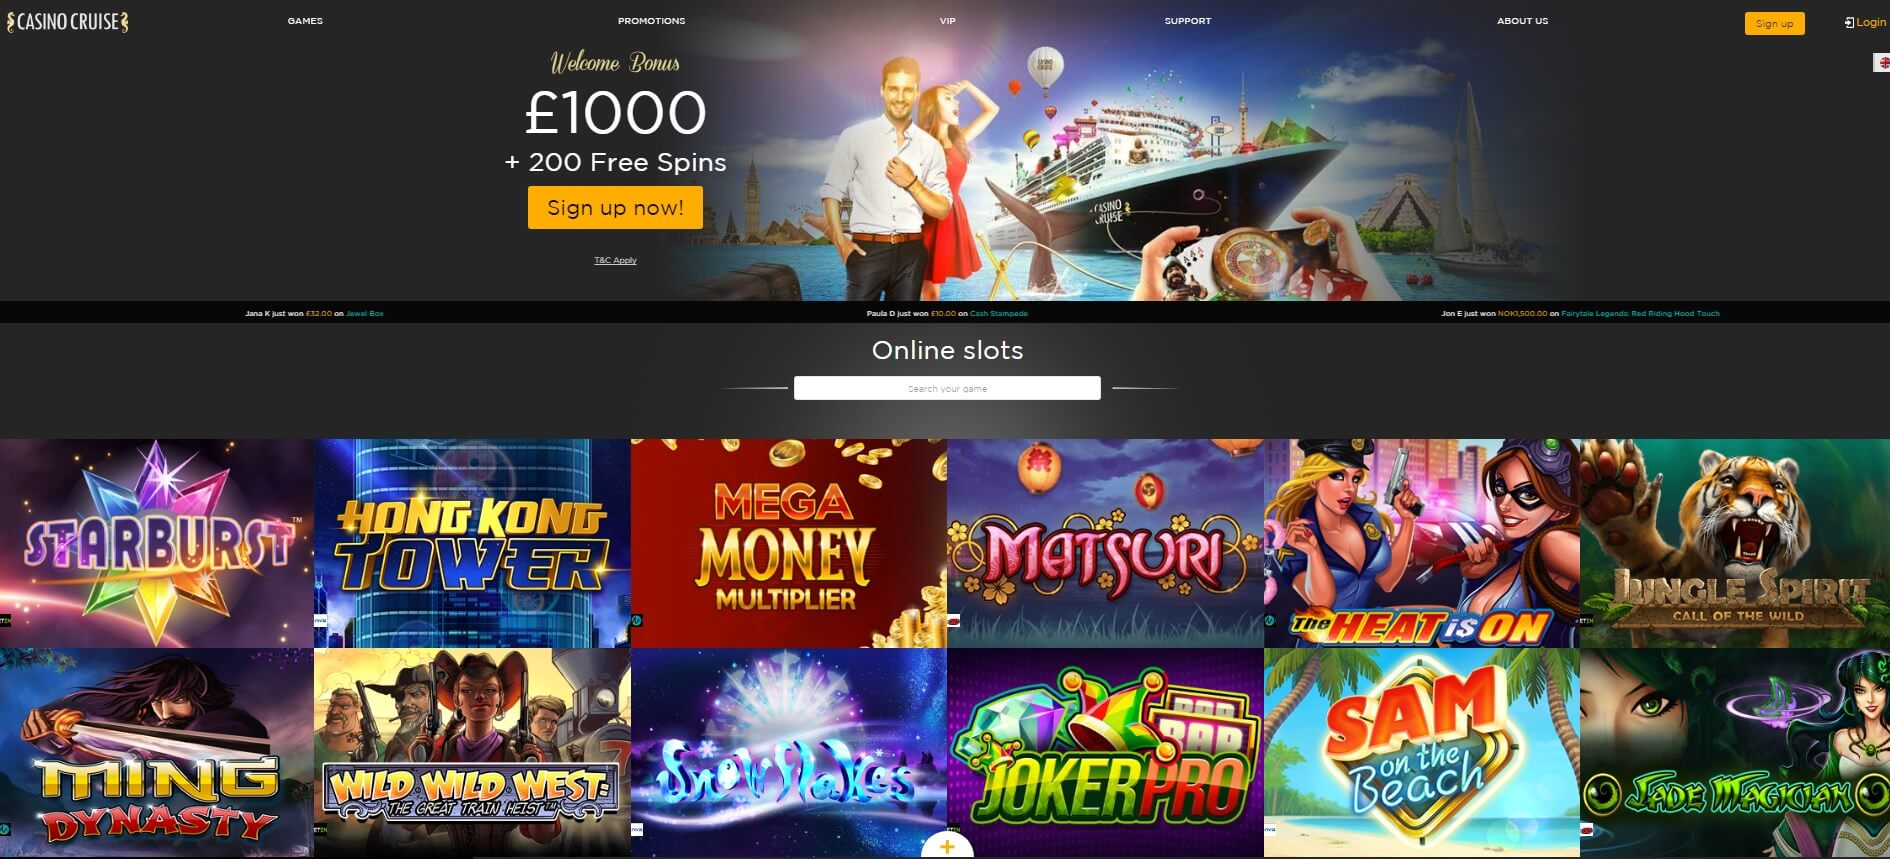 Play Casino.com Classic Online Pokies at Casino.com Australia